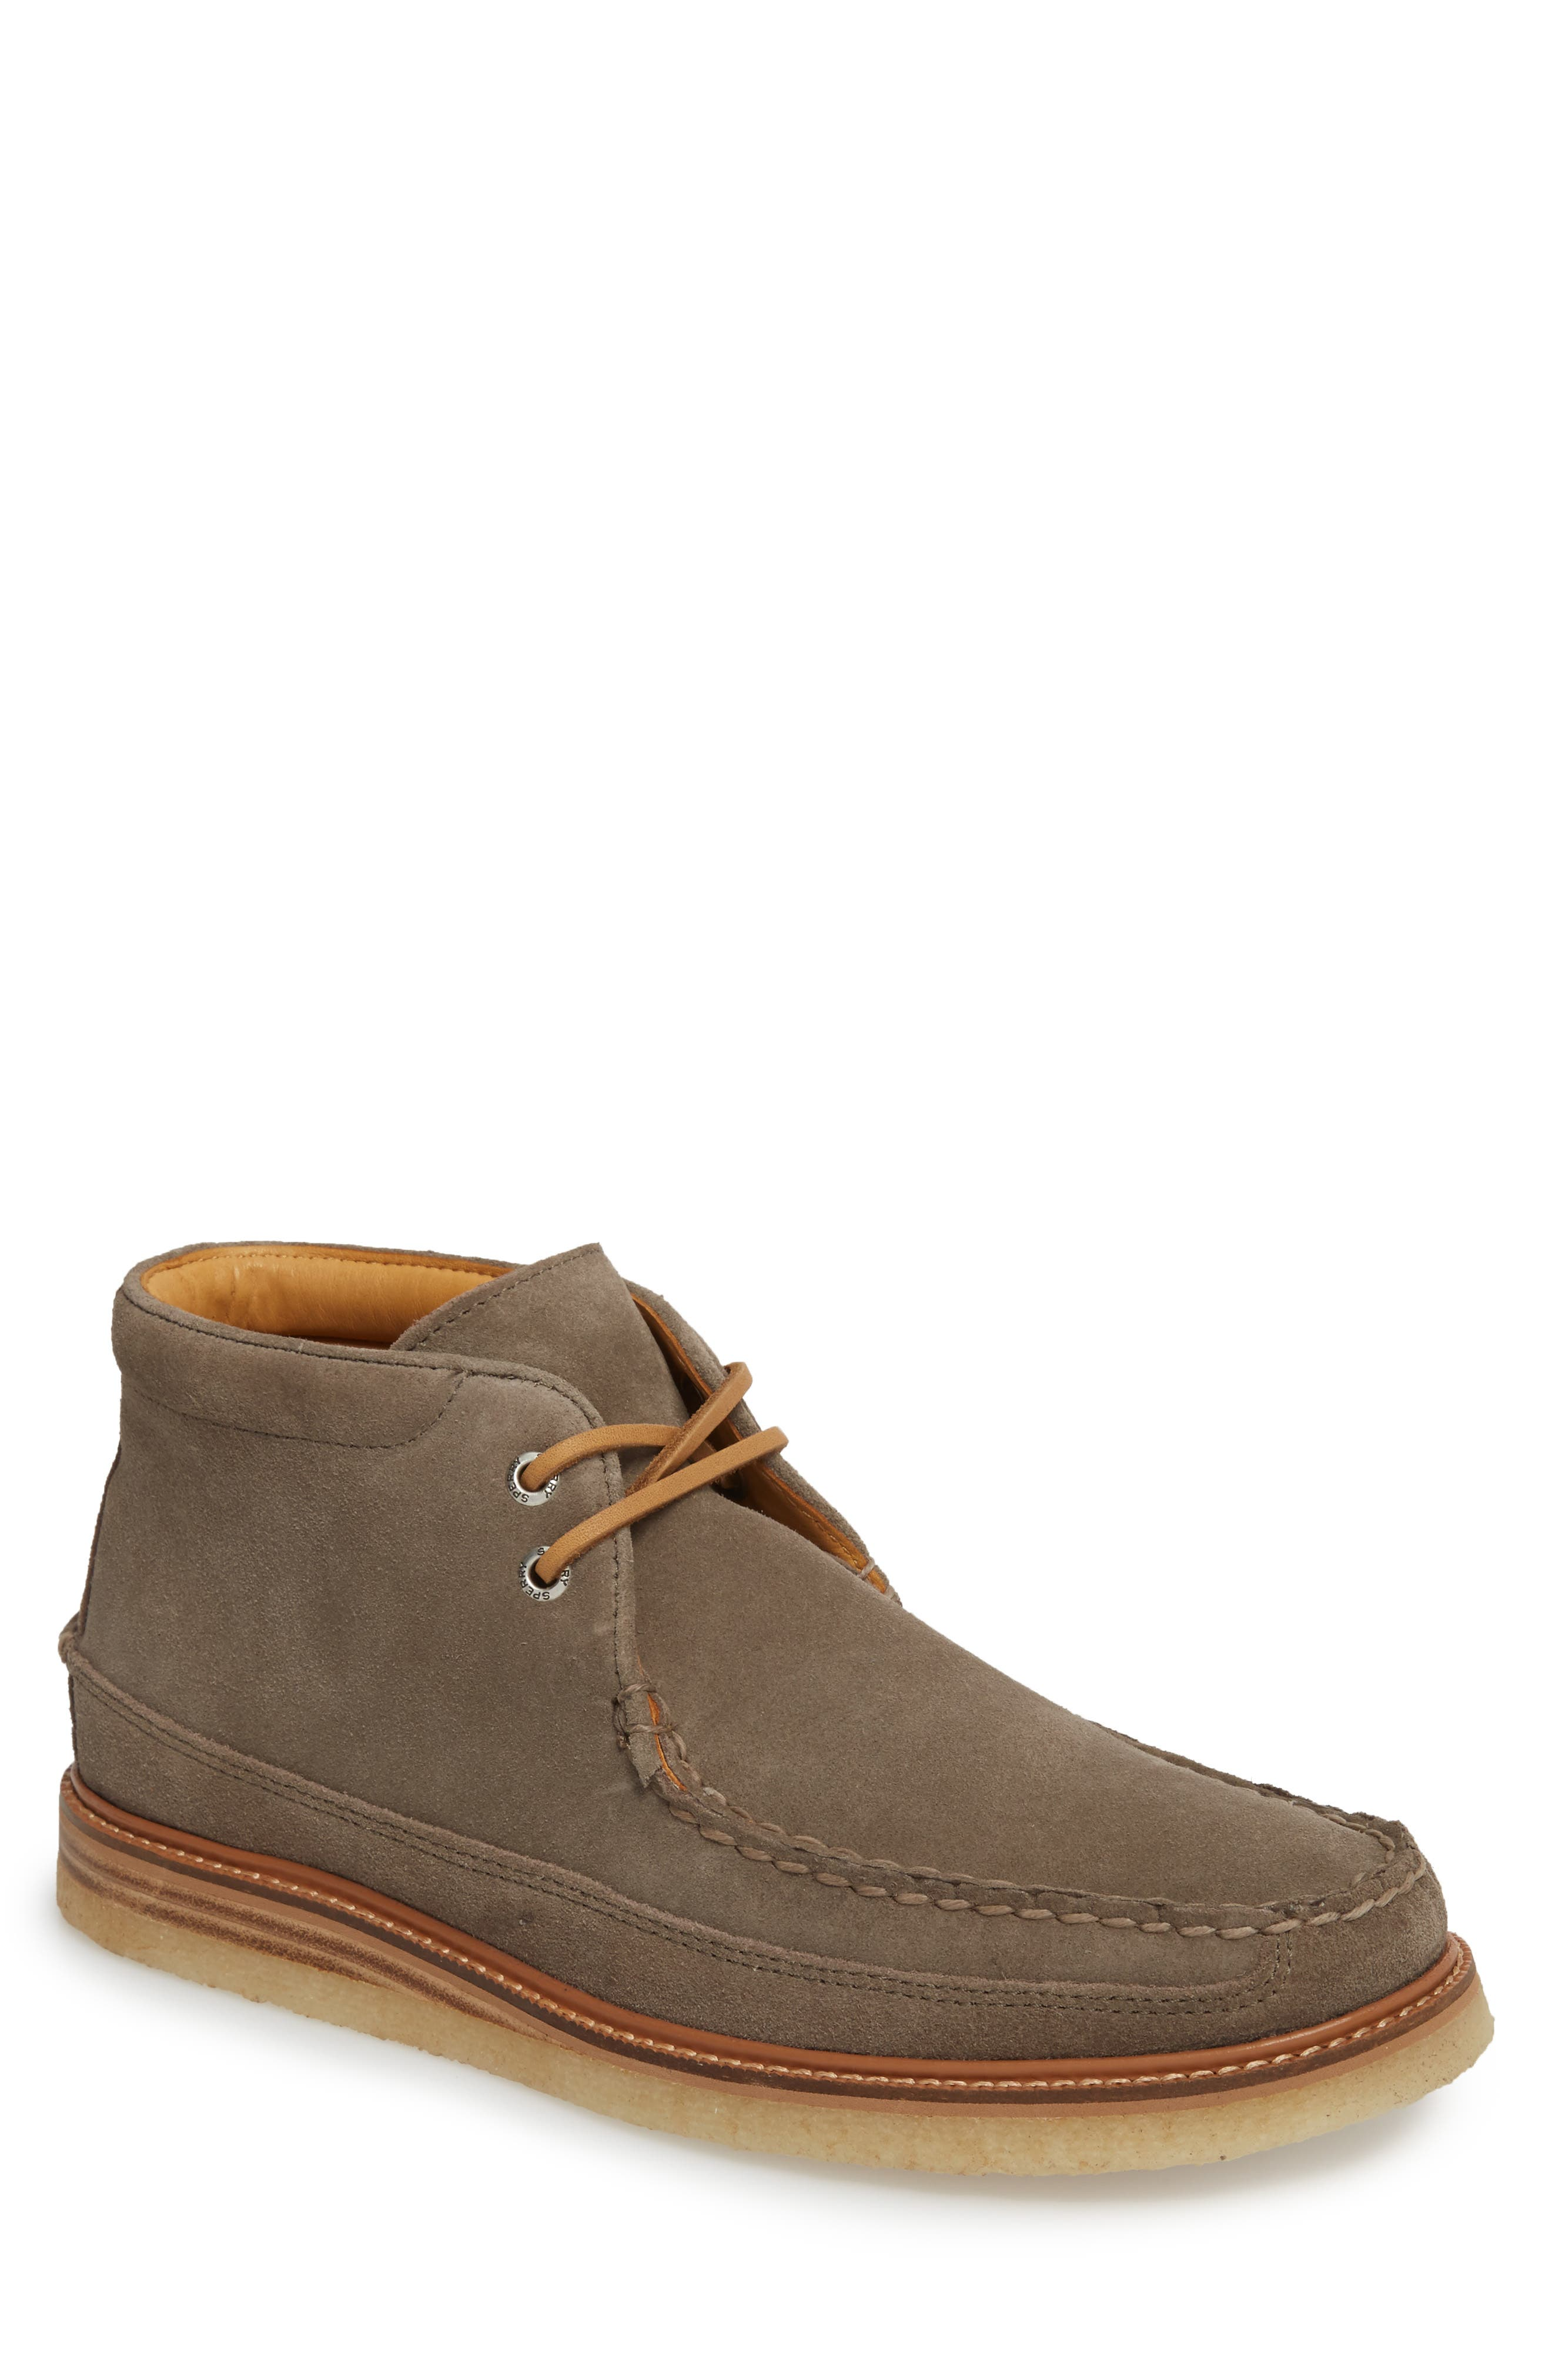 Gold Cup Chukka Boot,                         Main,                         color, Taupe Grey Leather/ Suede